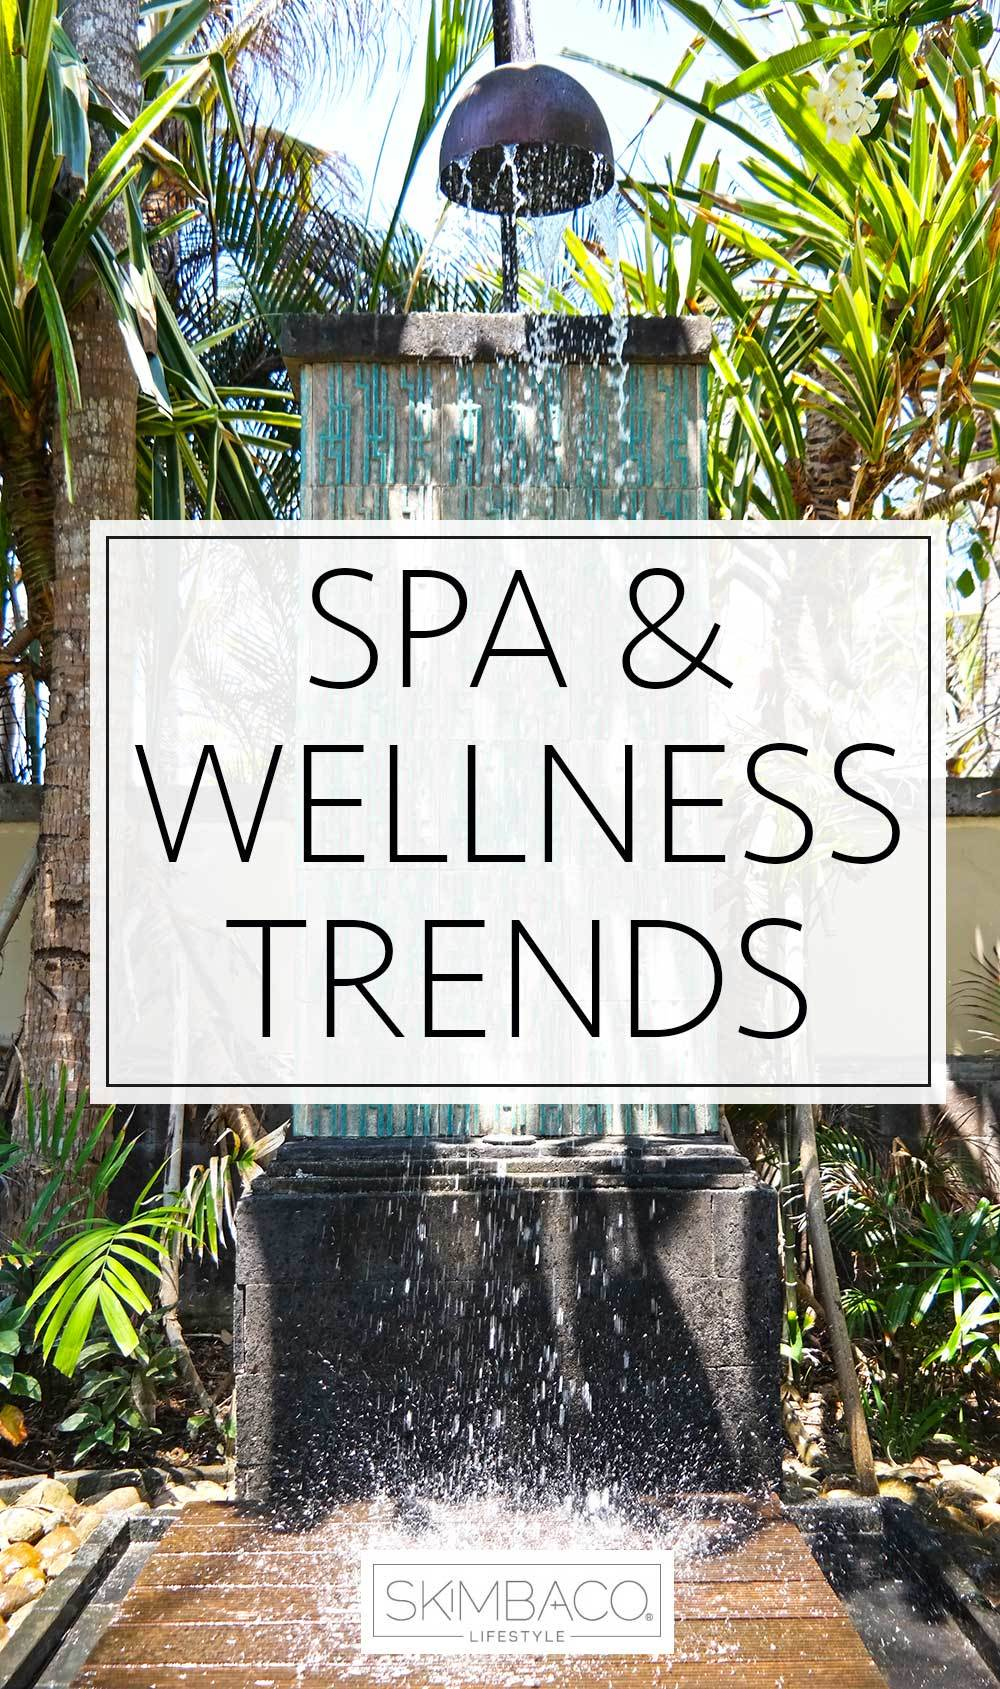 Top 10 Spa  Wellness Lifestyle Trends 2016  Skimbaco Lifestyle online magazine  Skimbaco